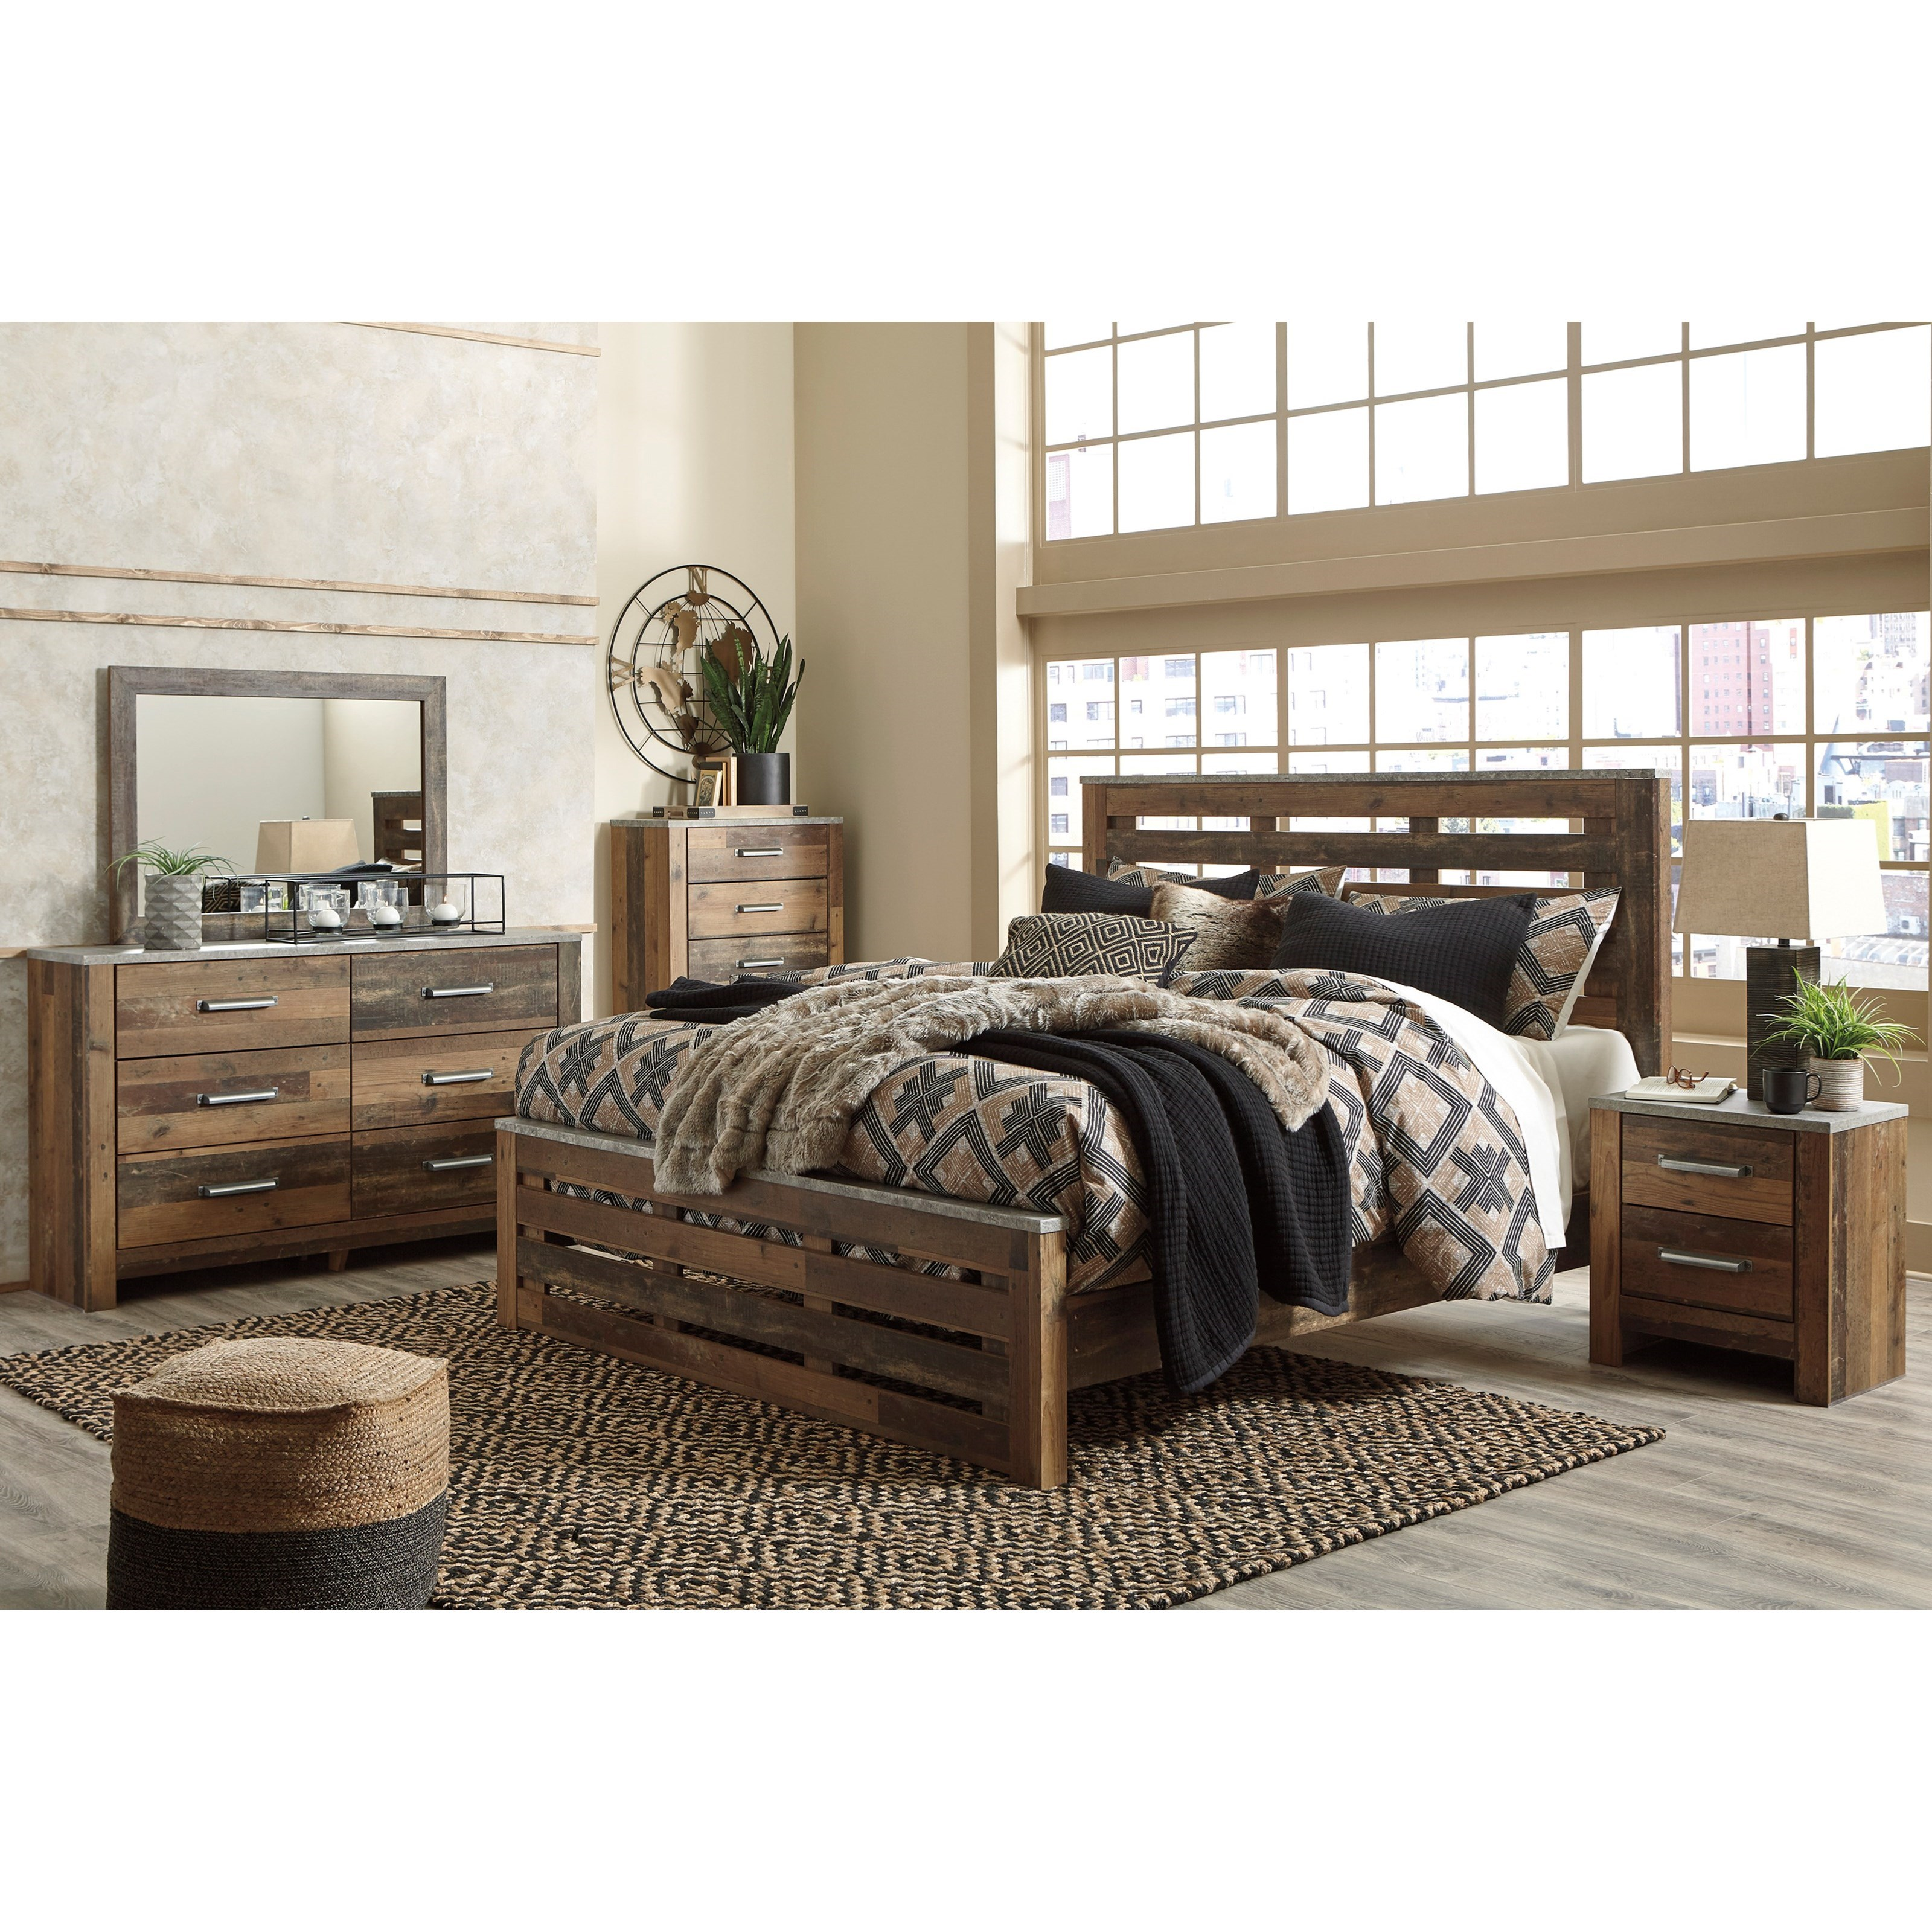 Chadbrook King Bedroom Group by Benchcraft at Miller Waldrop Furniture and Decor